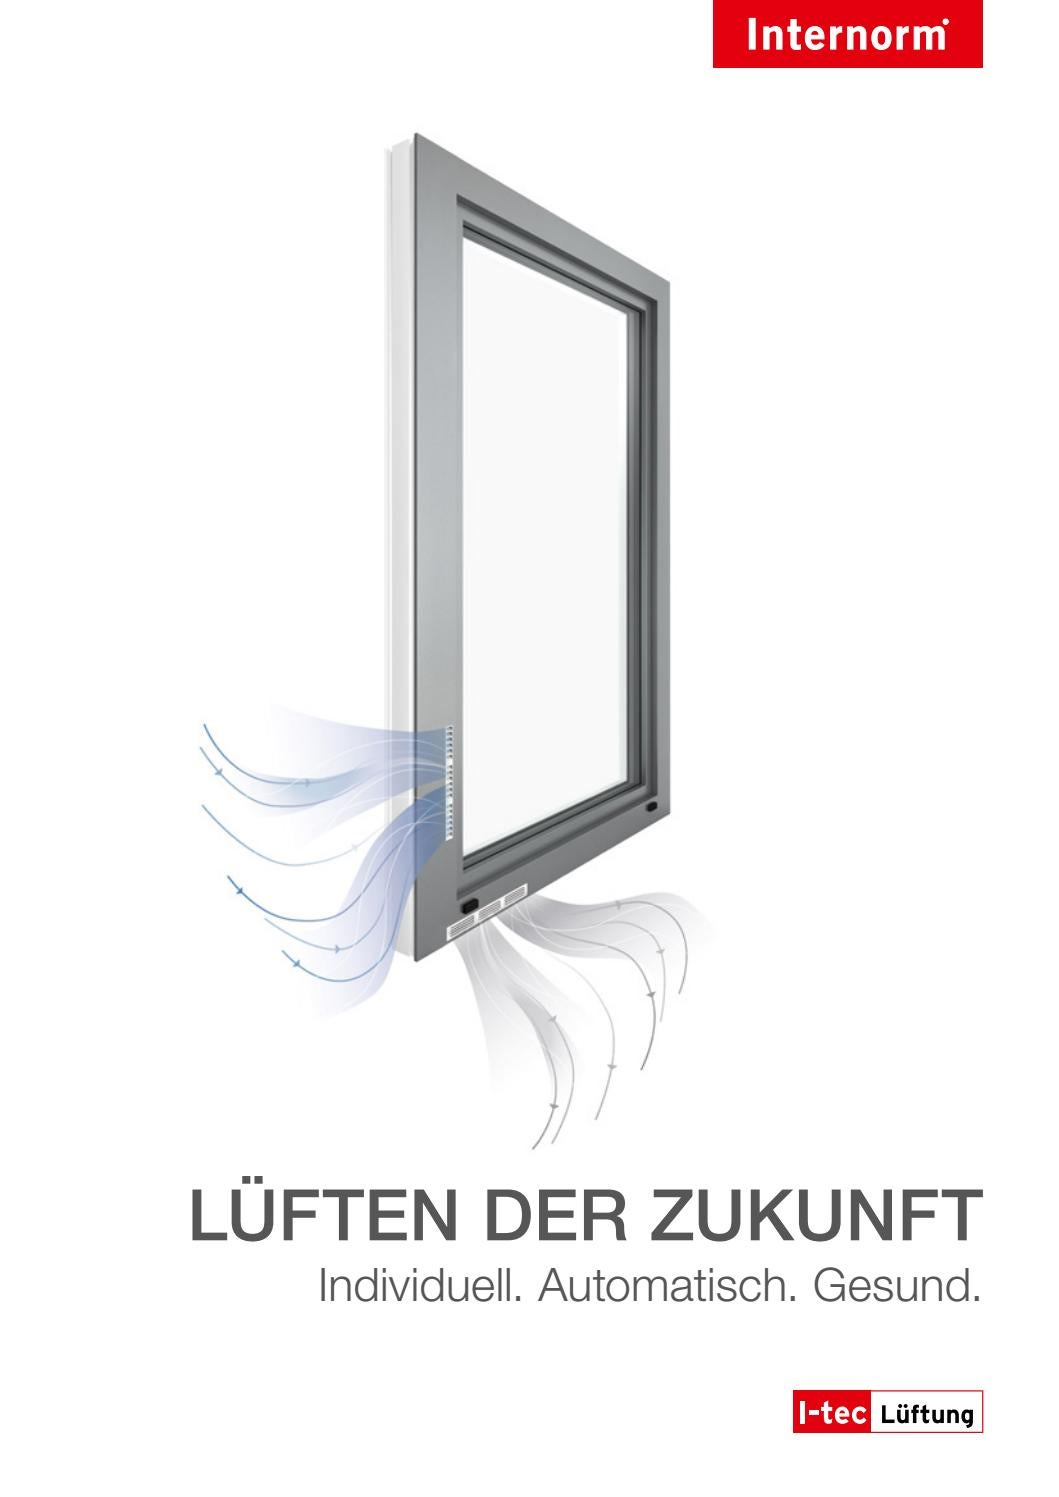 internorm folder i tec l ftung im fenster integrierte l ftung by internorm windows doors issuu